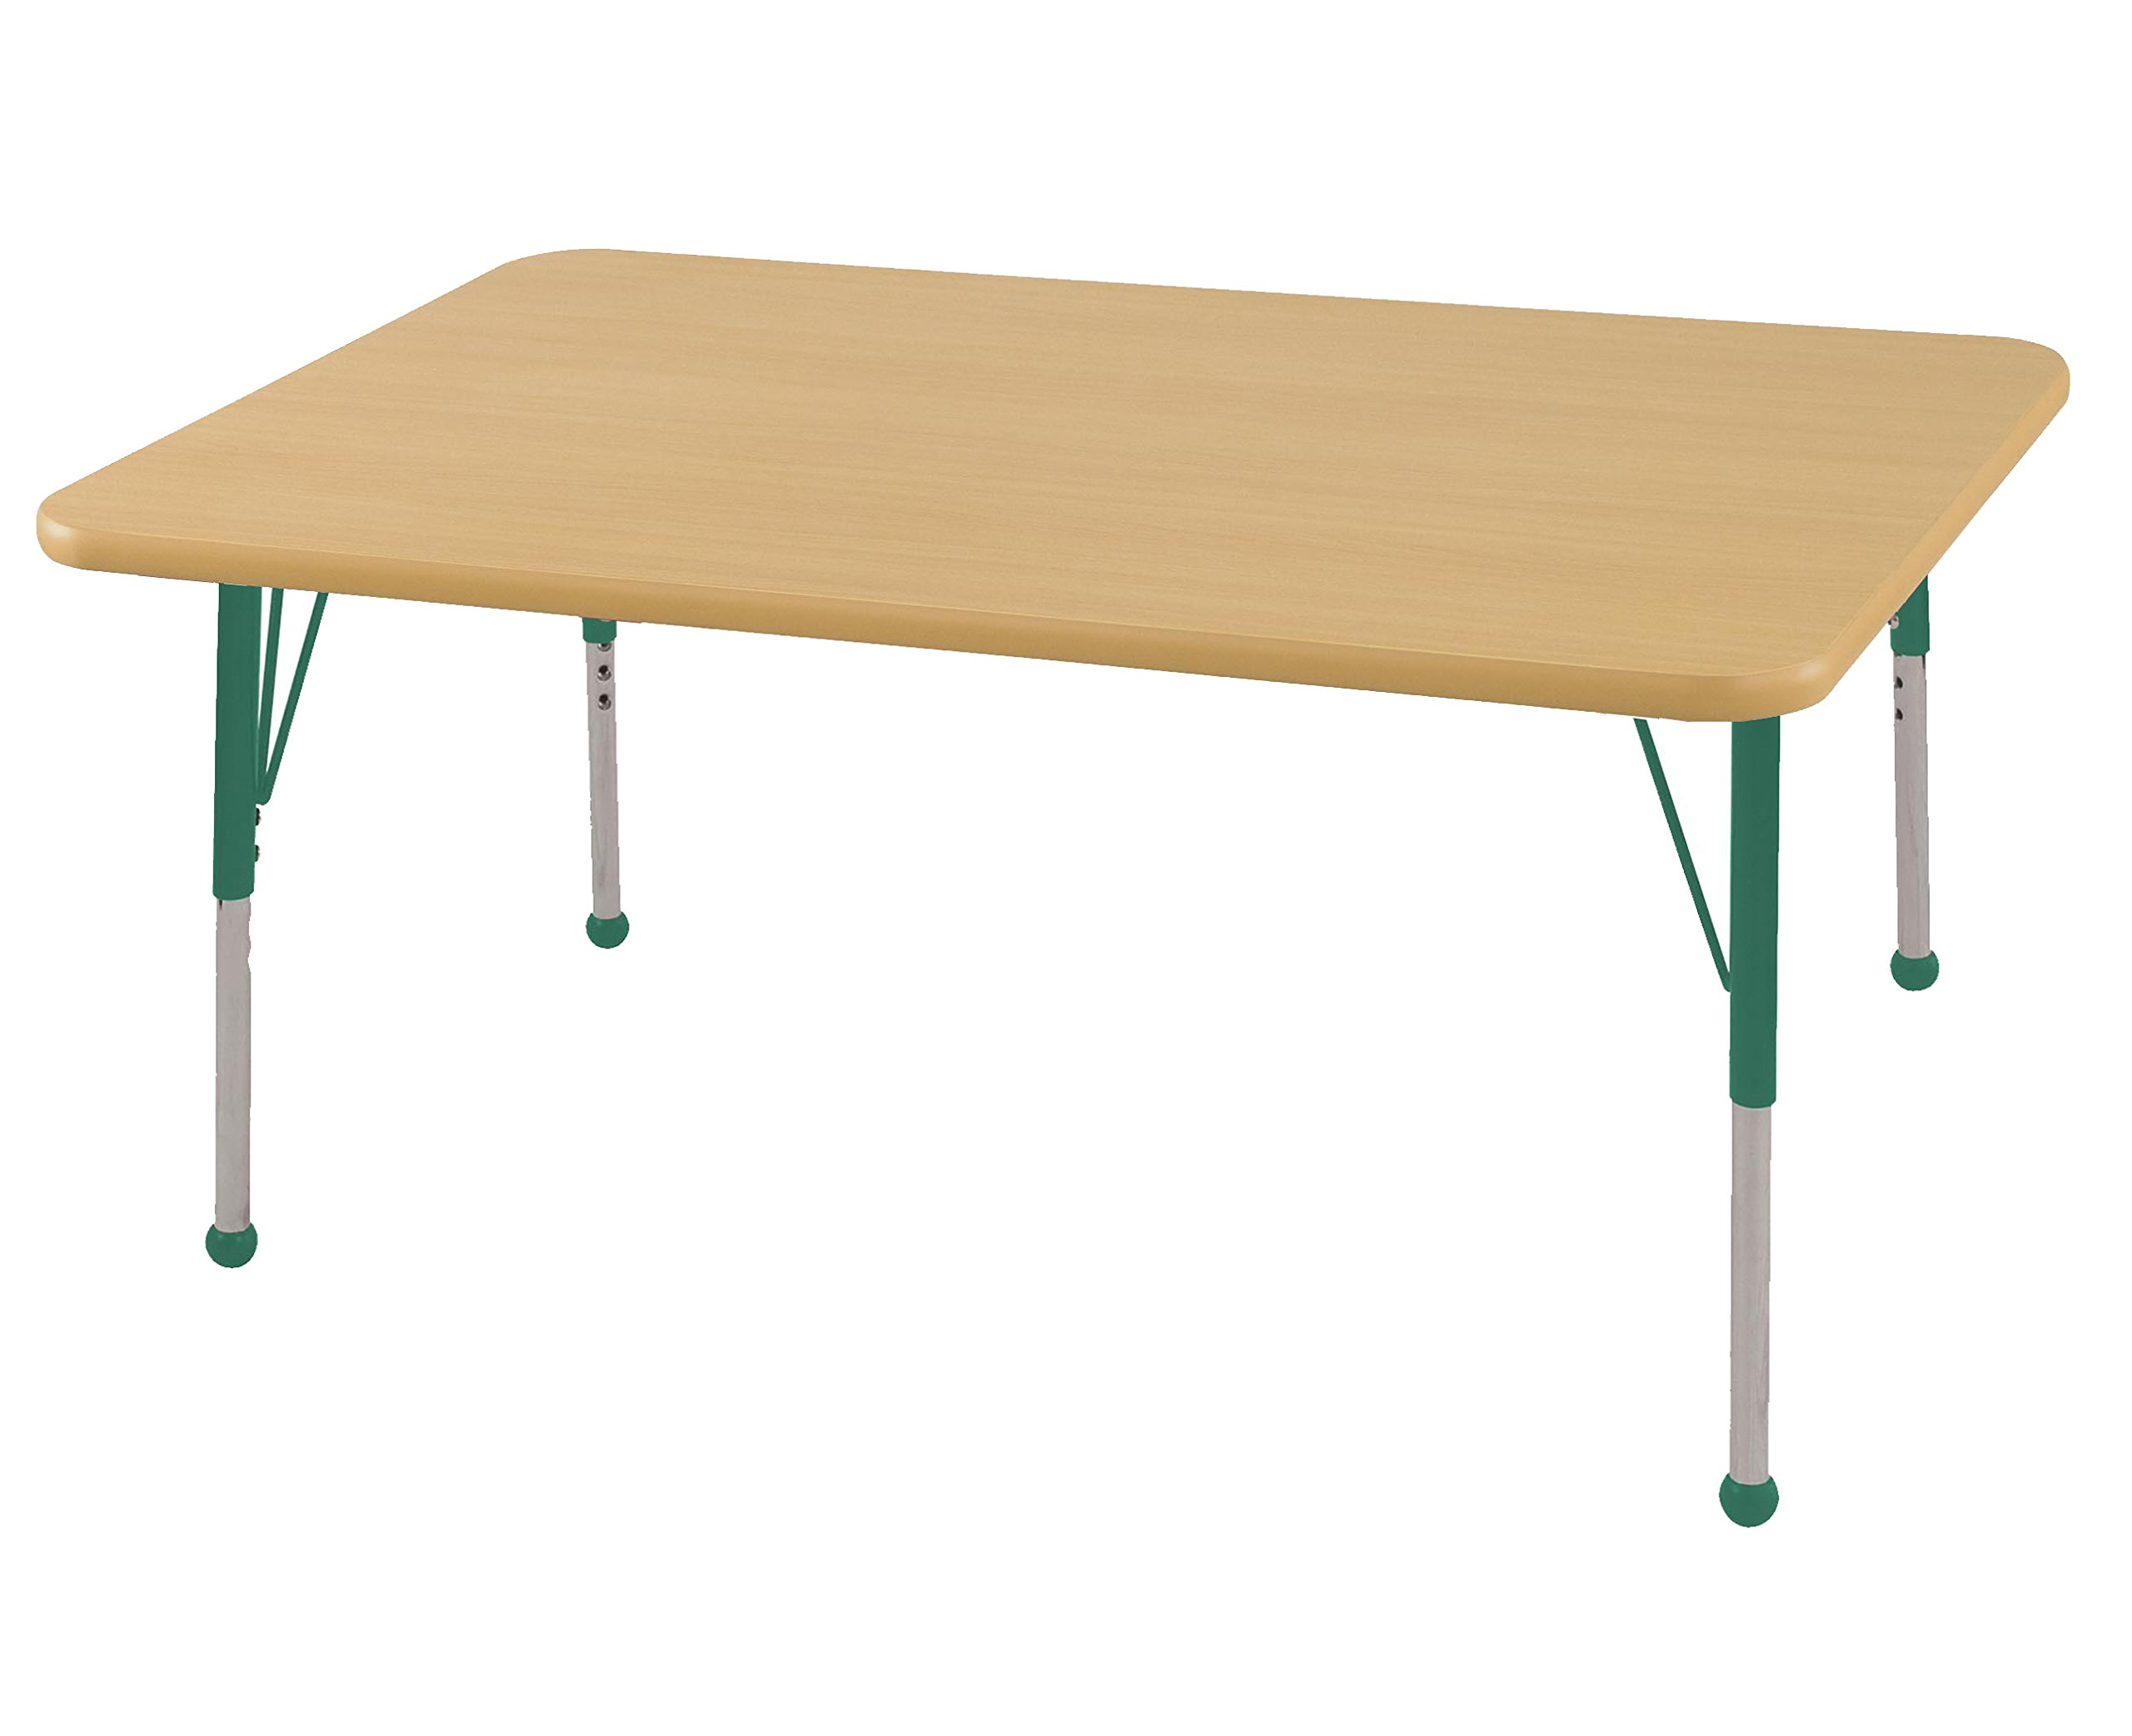 ECR4Kids T-Mold 30'' x 48'' Rectangular Activity School Table, Standard Legs w/ Ball Glides, Adjustable Height 19-30 inch (Maple/Green) by ECR4Kids